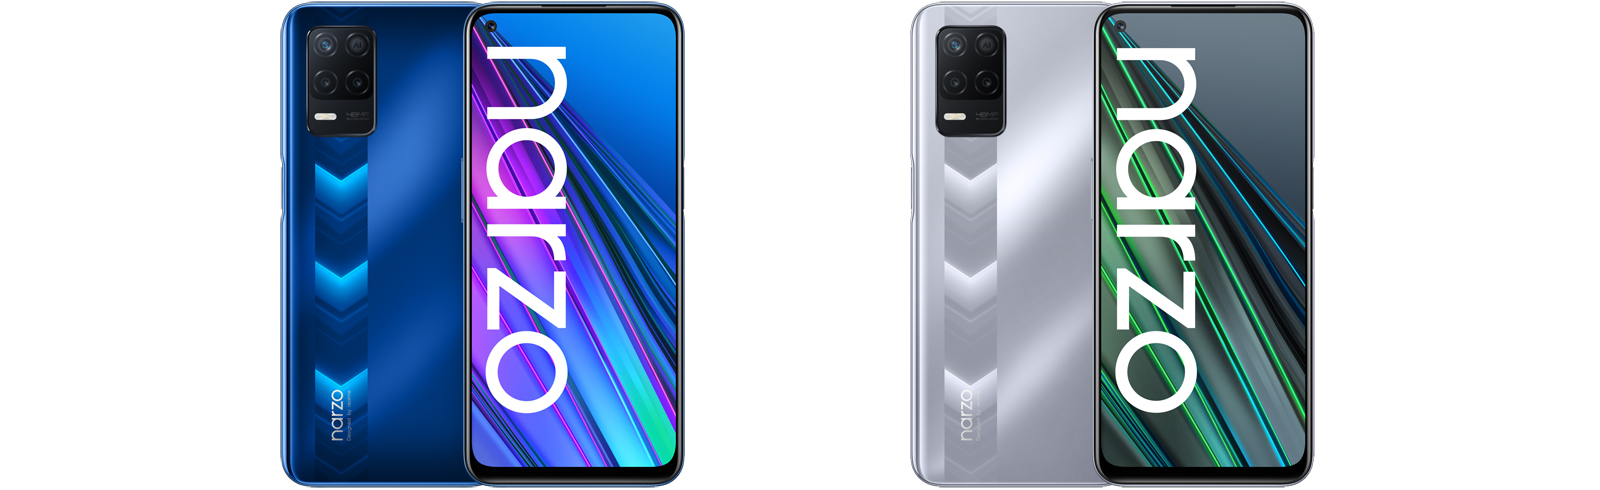 Realme Narzo 30 5G goes official in Europe to compete with the POCO M3 Pro